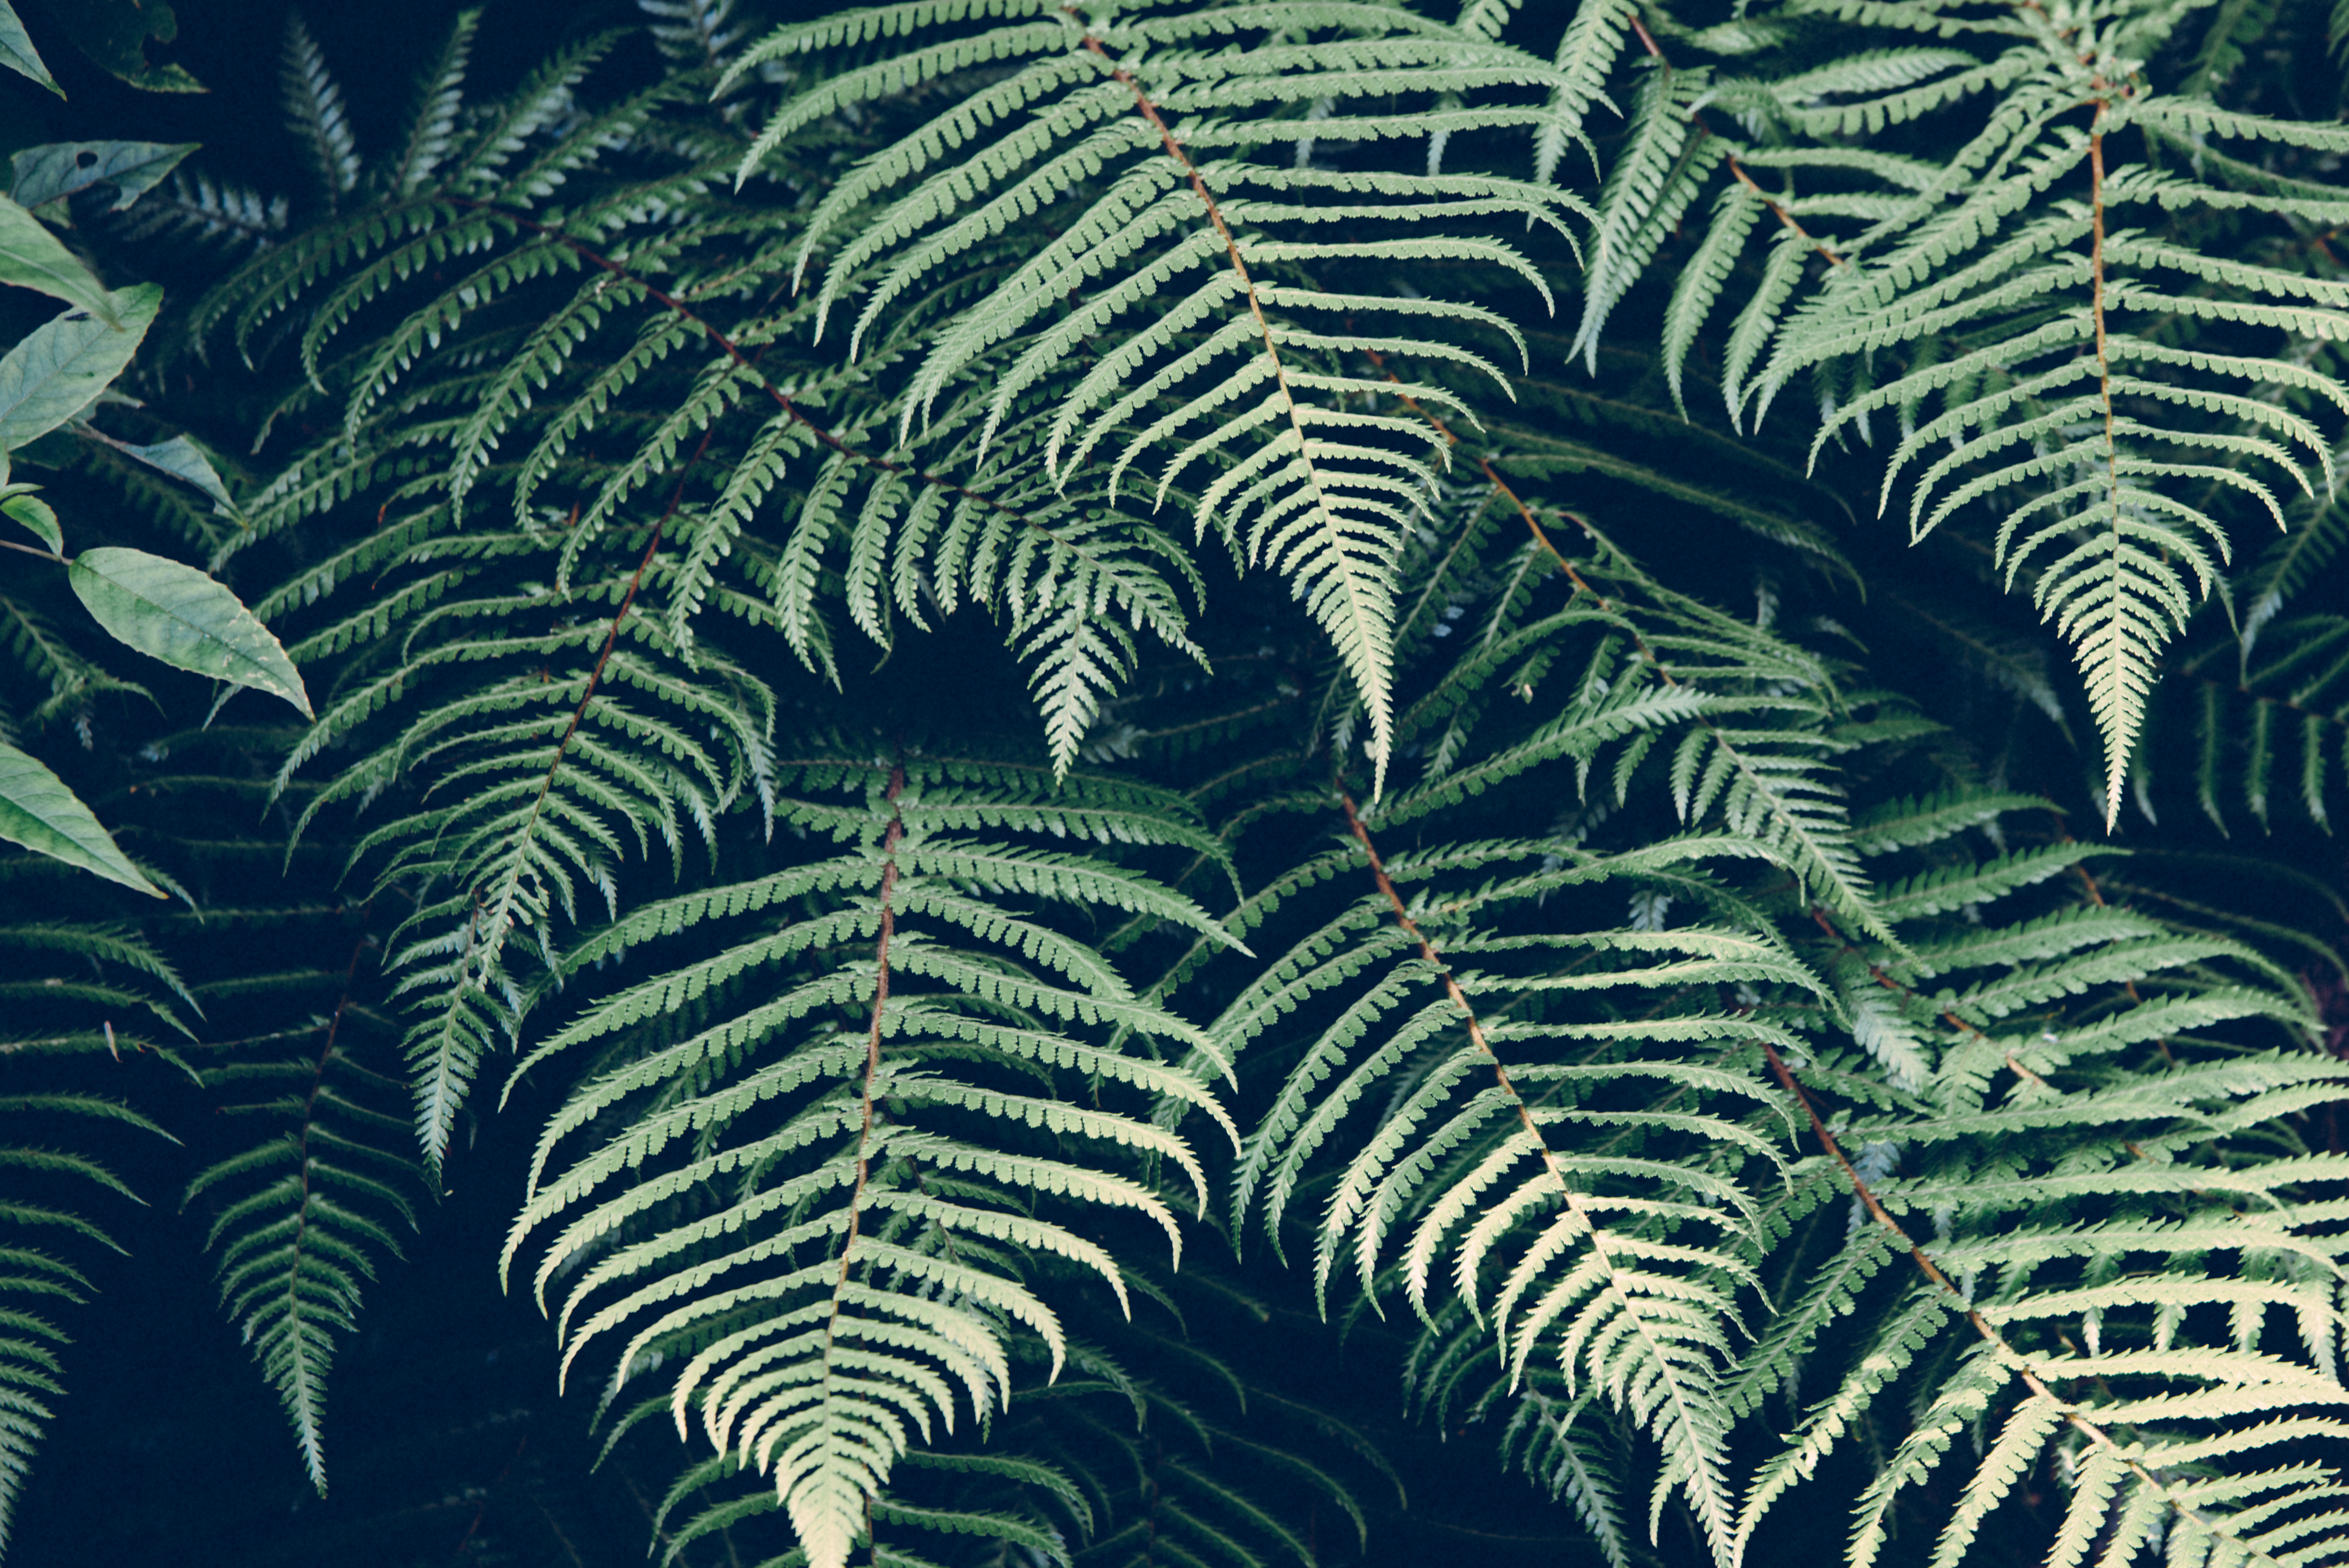 Fern 4k Ultra Hd Wallpaper Background Image 4875x3254